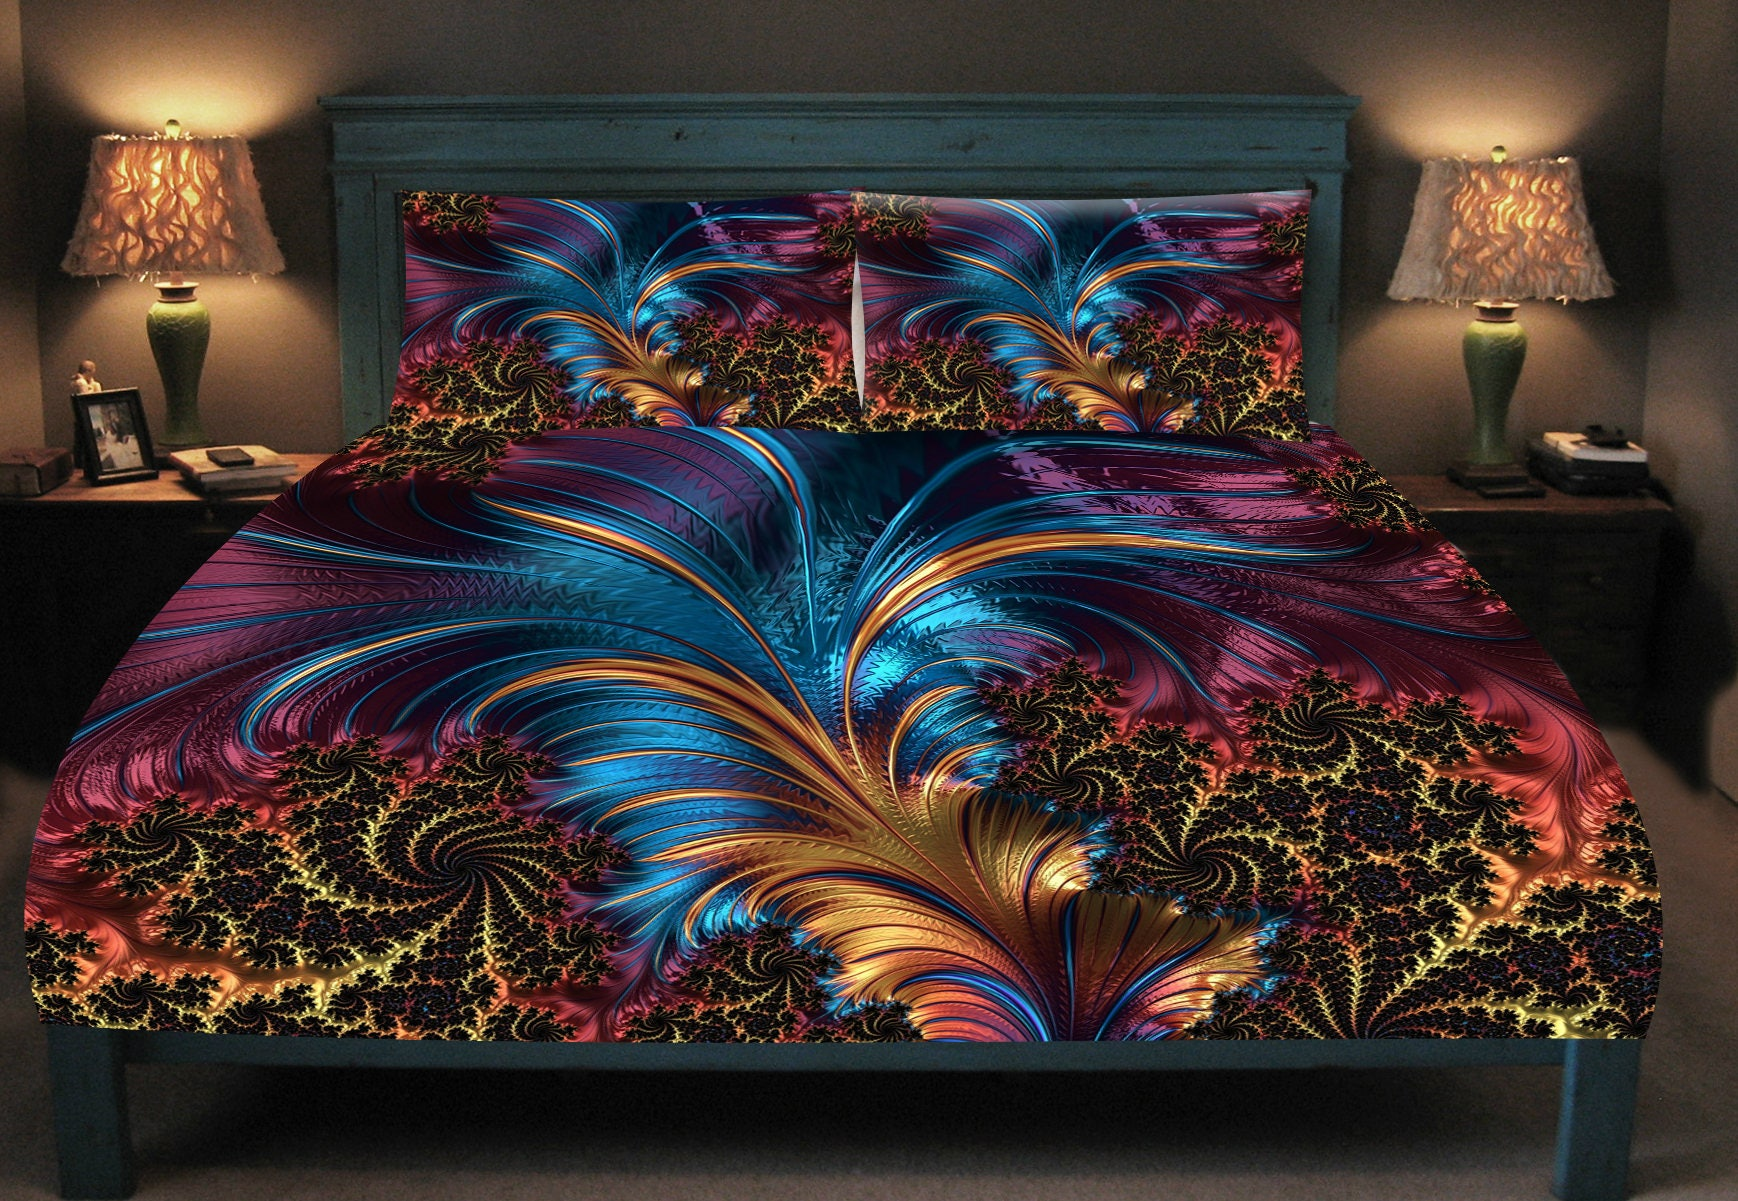 Peacock Comforter King Size: Majestic Peacock Feather Abstract Duvet Cover Set, Peacock